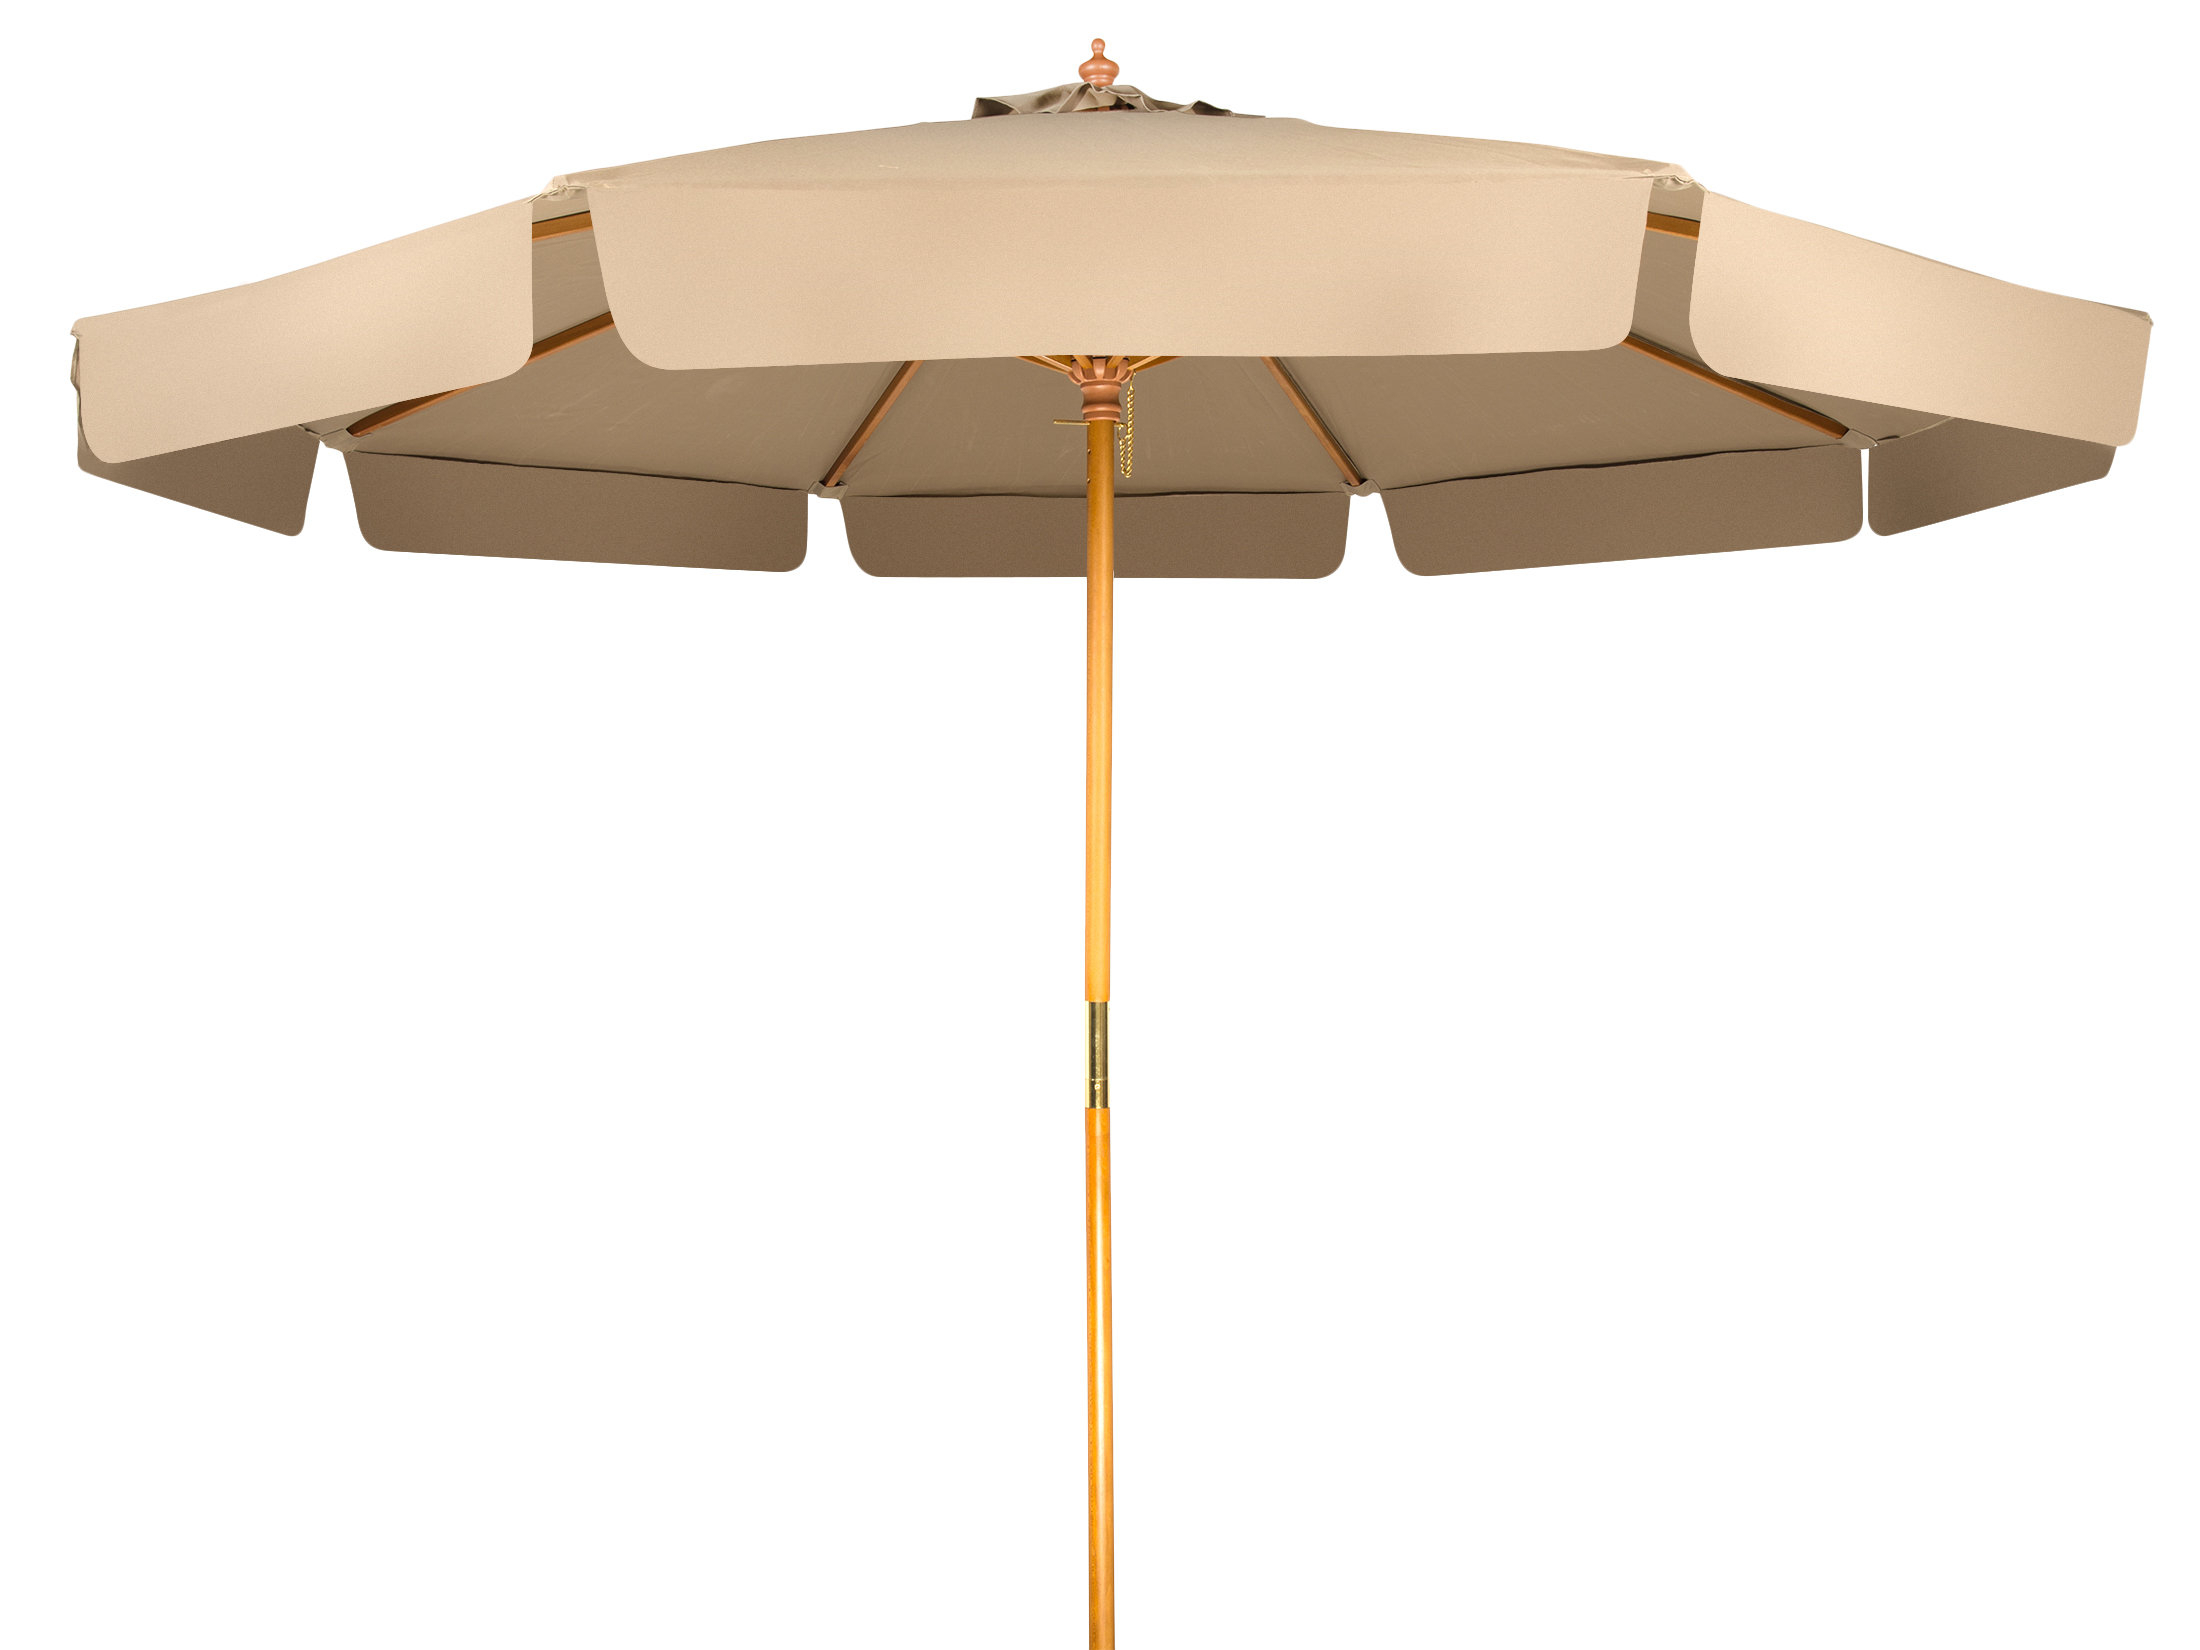 Well Known Grund Patio Wood Frame With Scalloped Edge 9' Market Umbrella With Lizarraga Market Umbrellas (View 18 of 20)